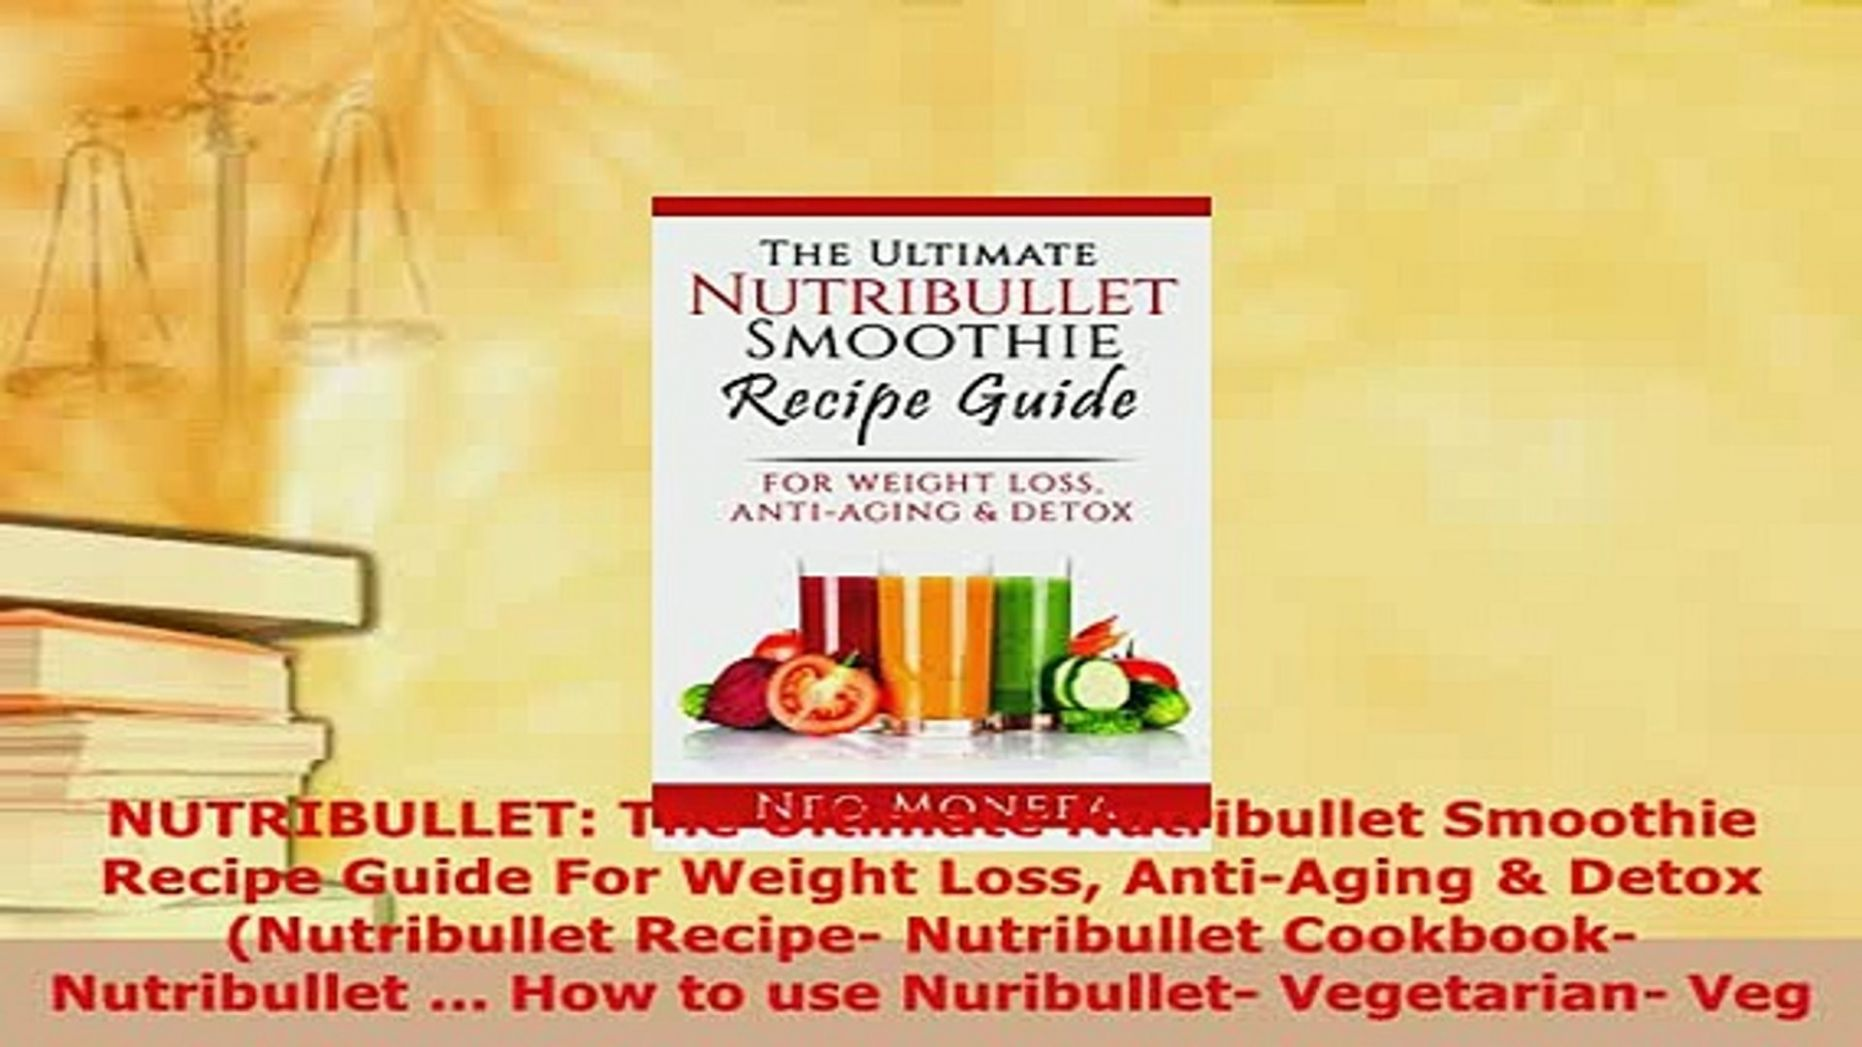 Download NUTRIBULLET The Ultimate Nutribullet Smoothie Recipe Guide For  Weight Loss AntiAging Read Online - Nutribullet Recipes Weight Loss